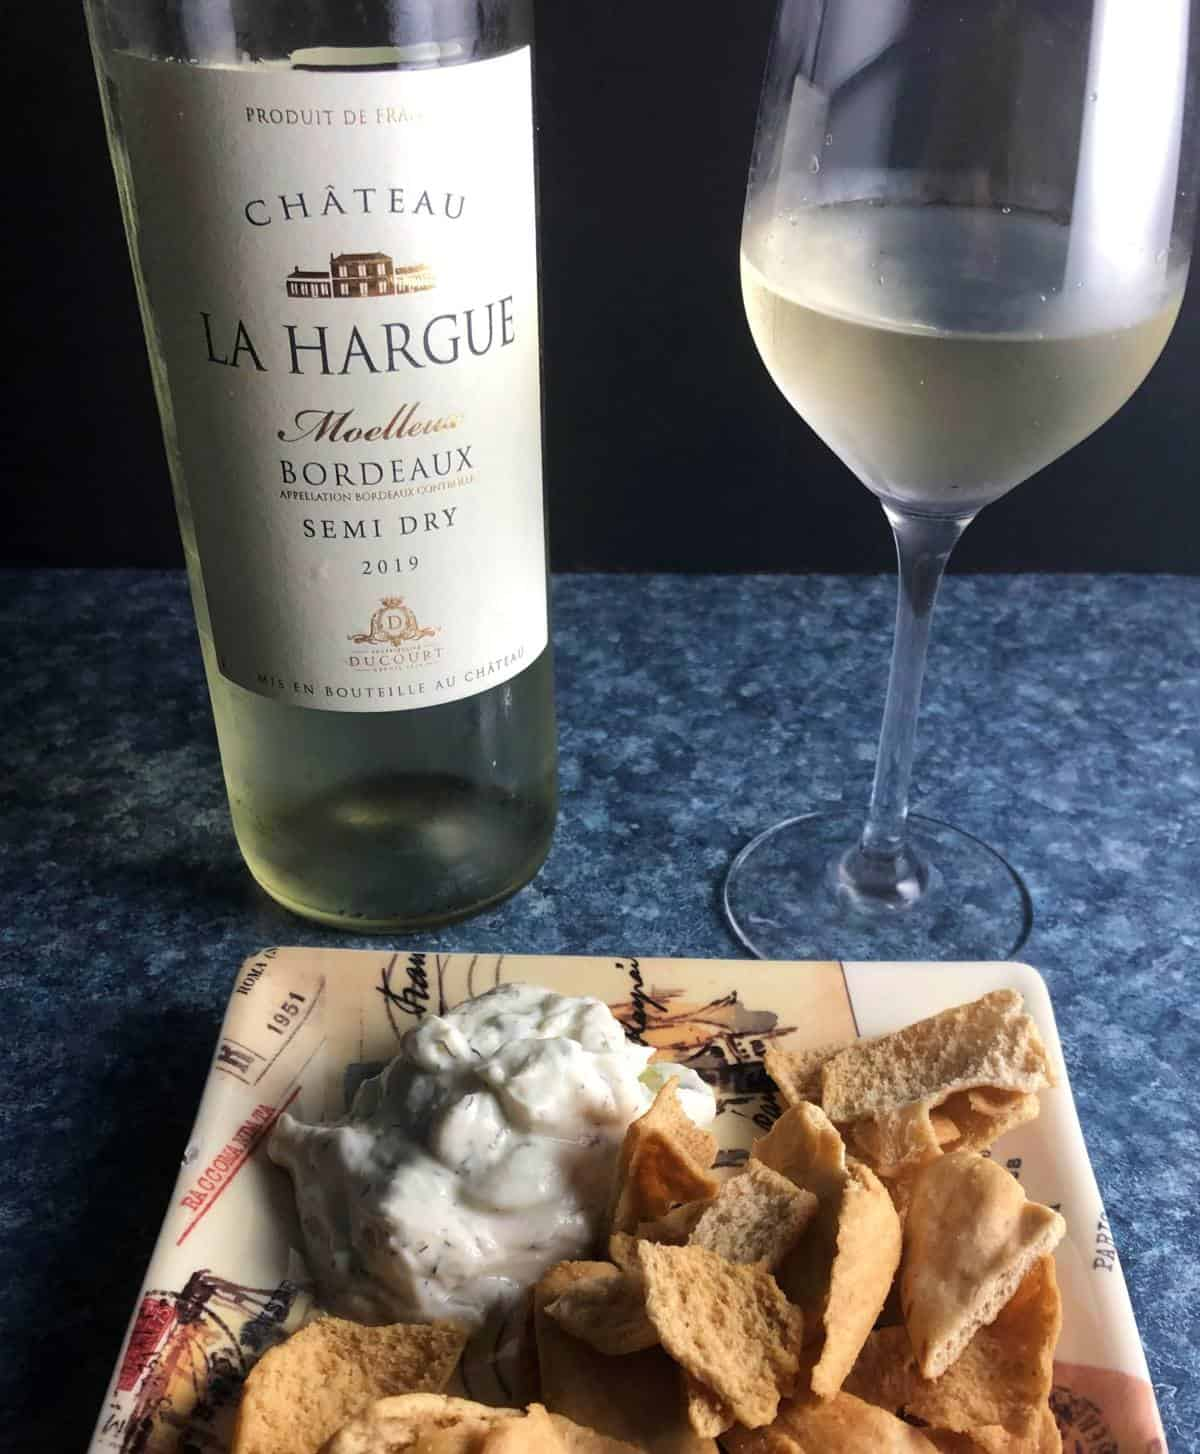 Bottle of Sweet Bordeaux wine served with tzatziki dip and pita chips.